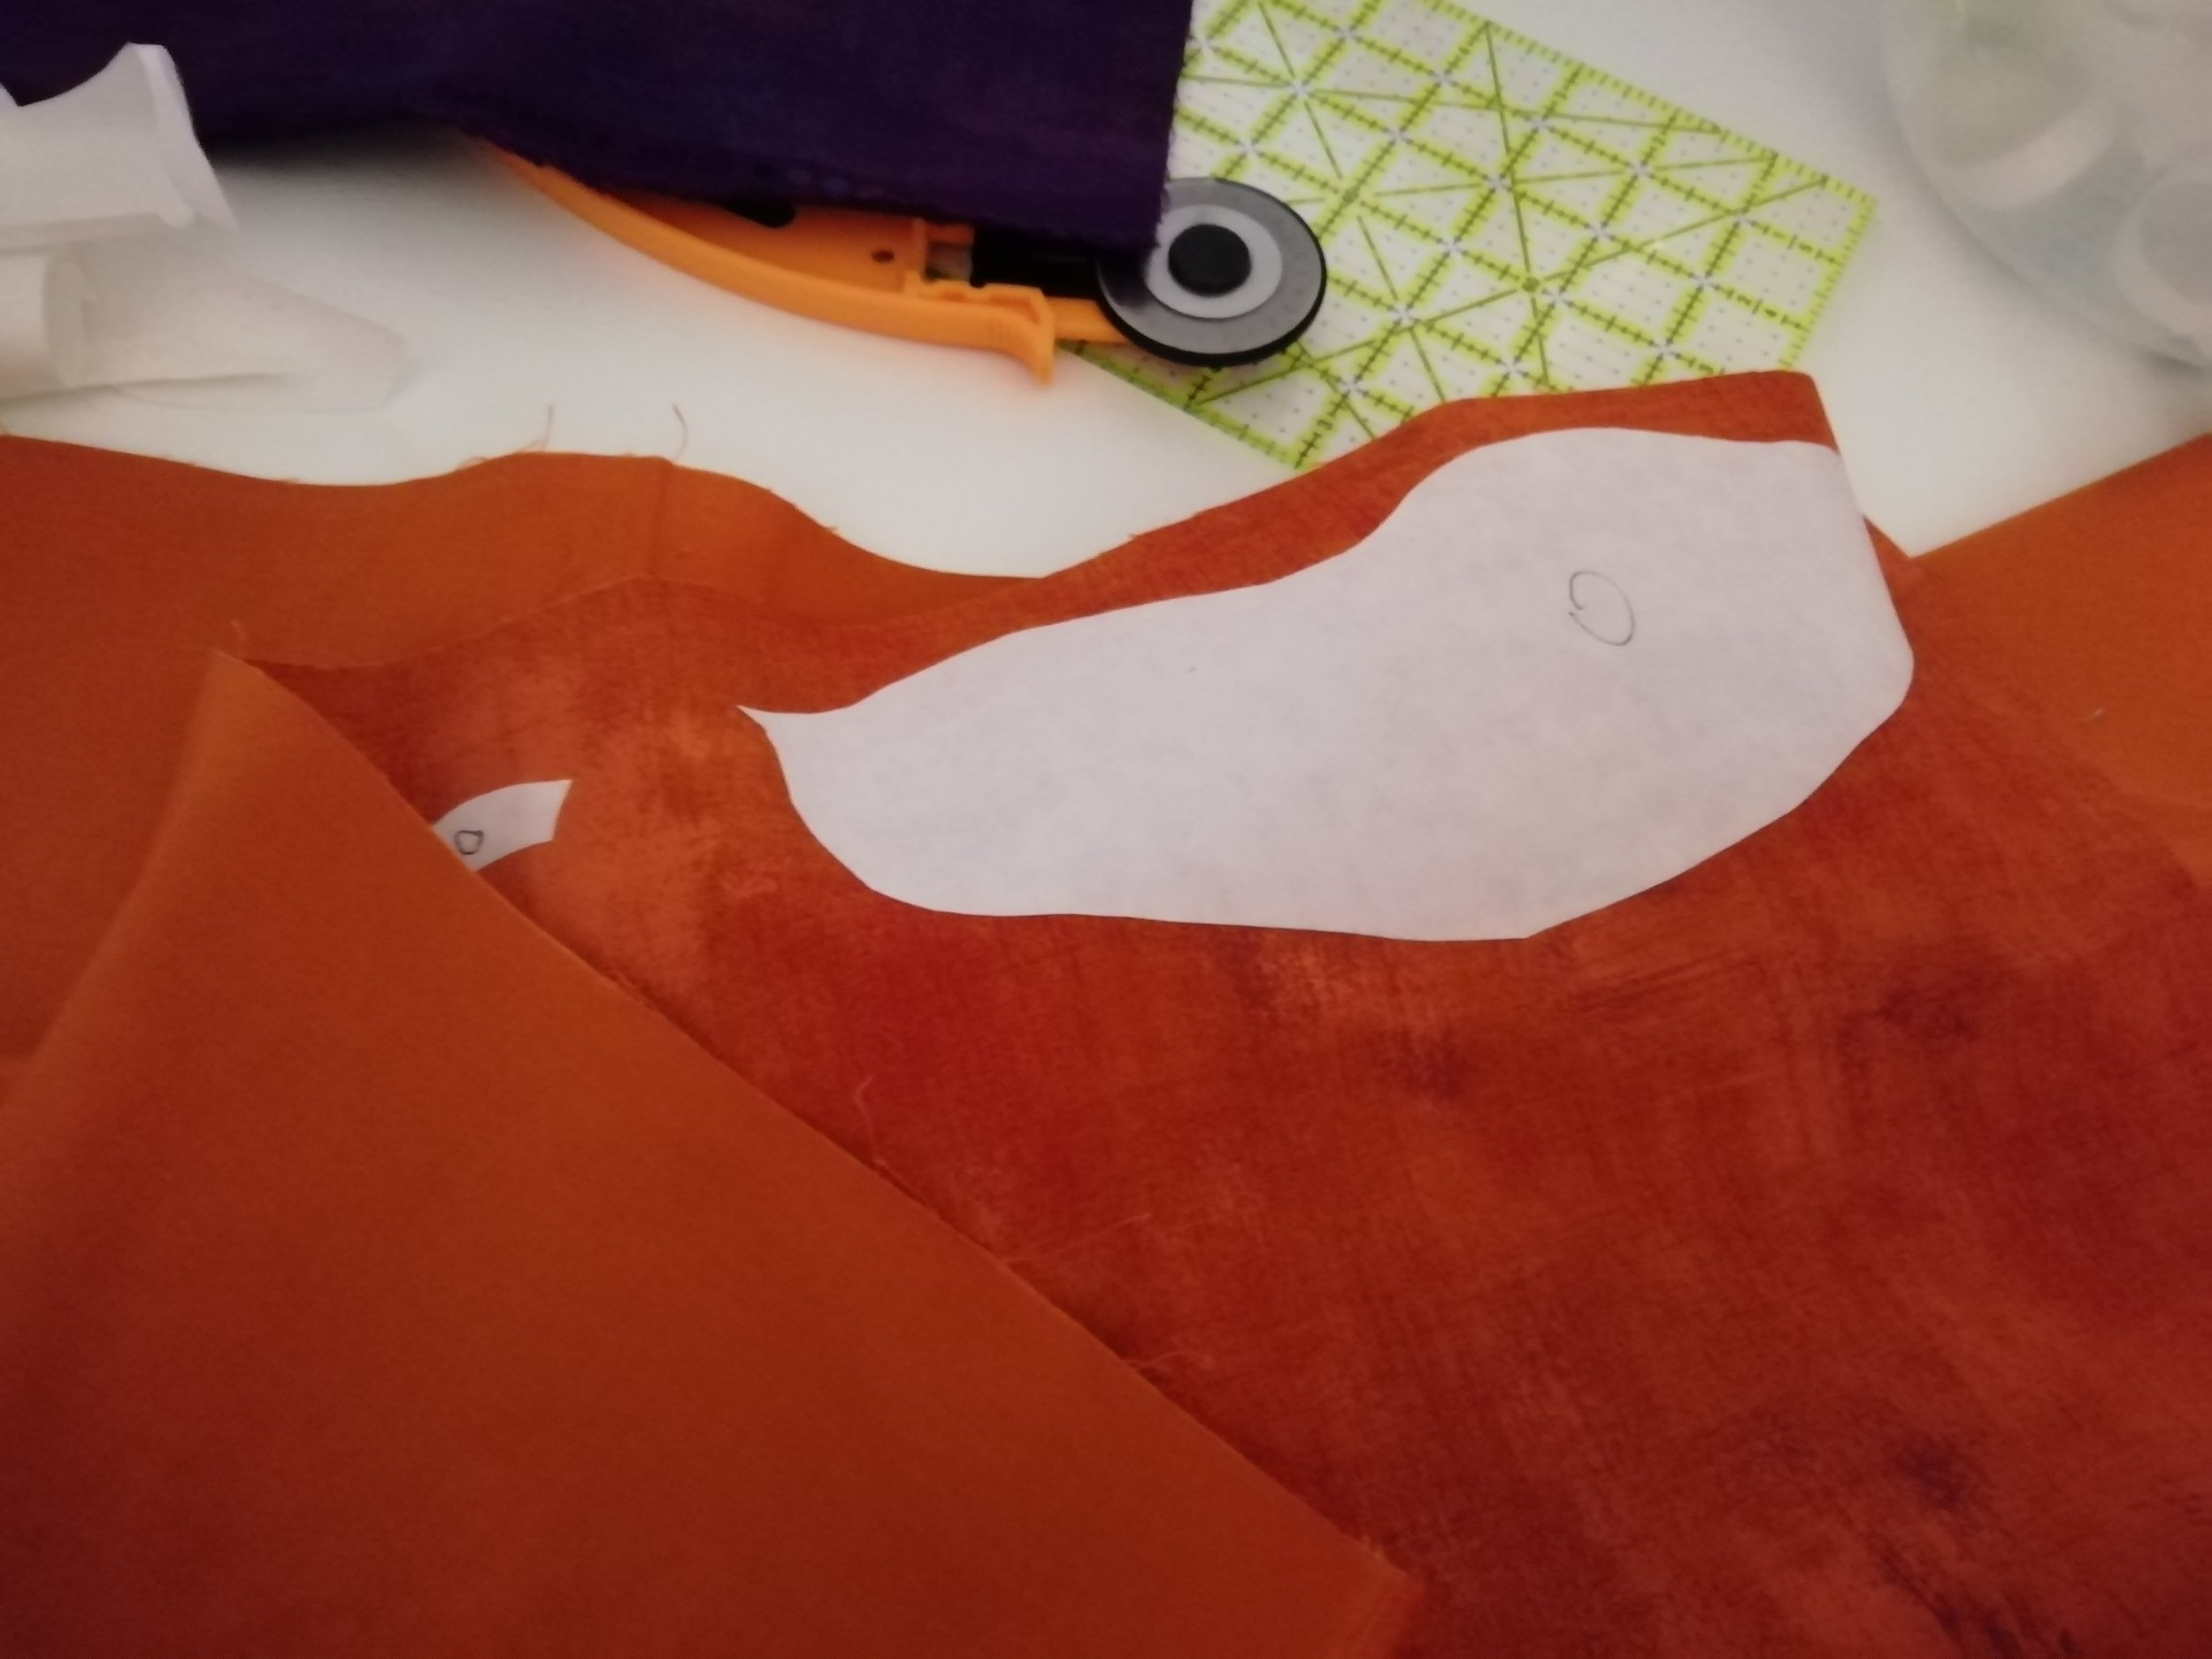 Always double-check which side of the fabric you're interfacing!